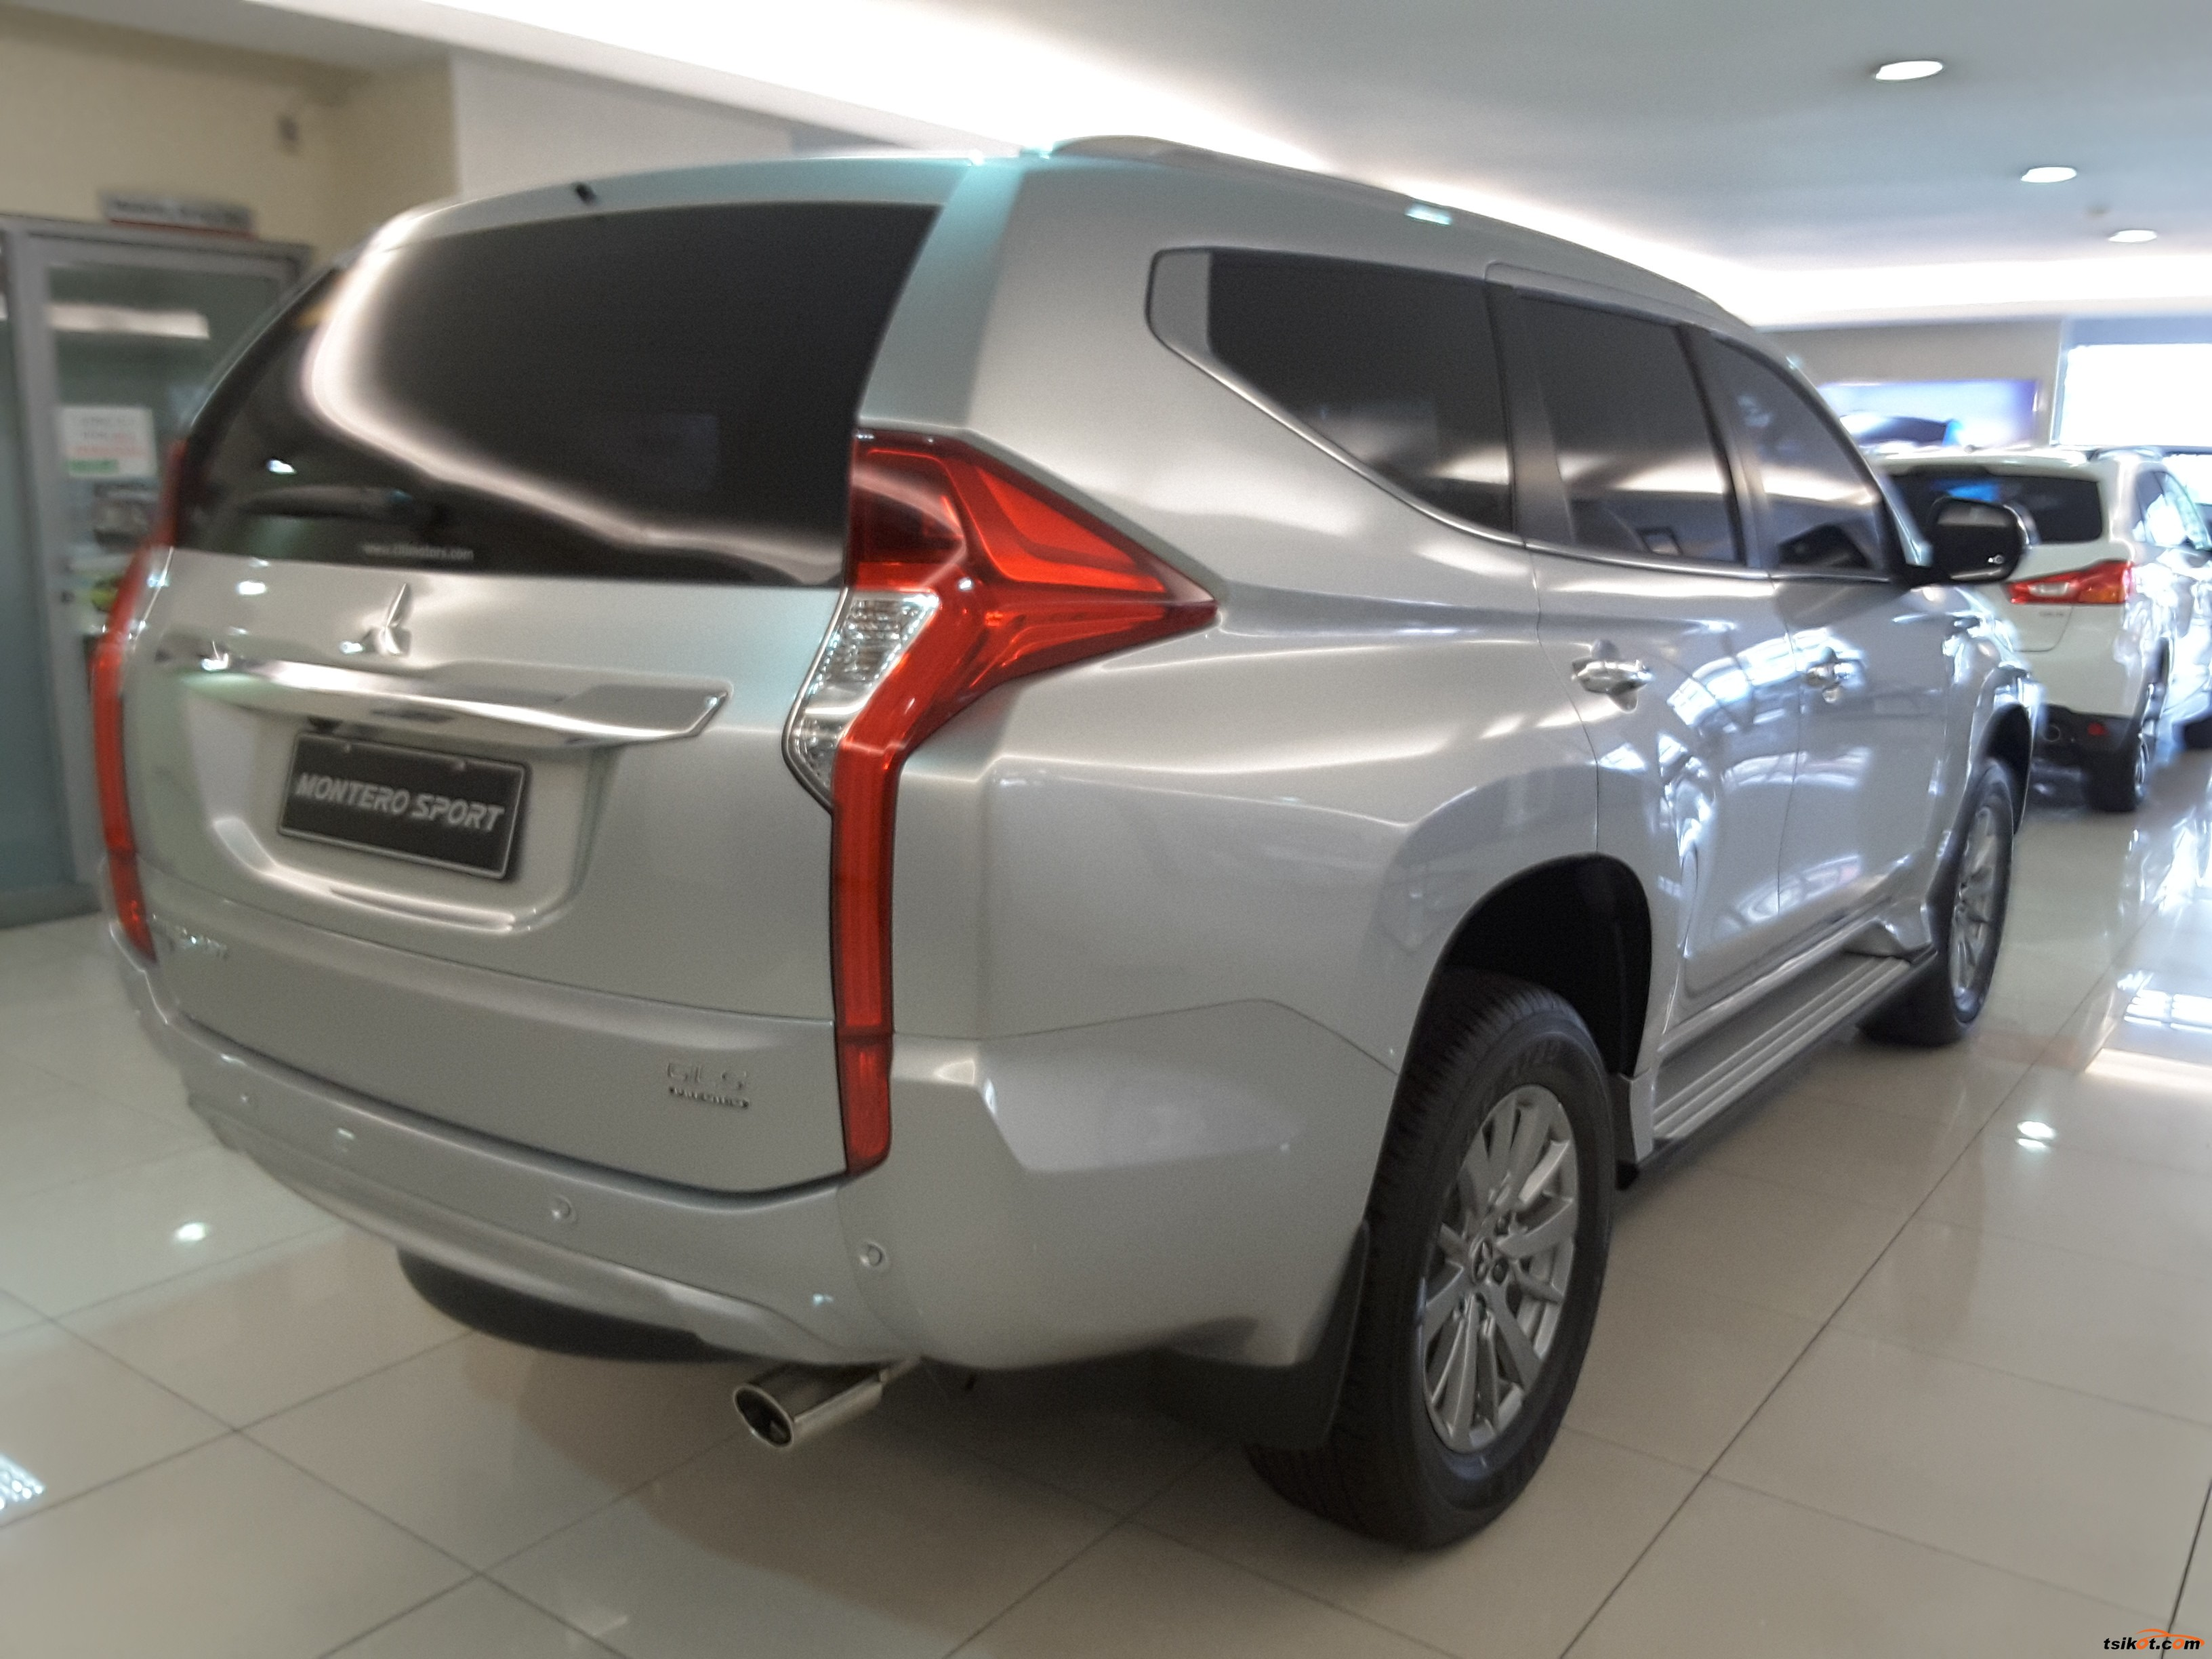 sale for listings dem spot front mitsubishi montero limited